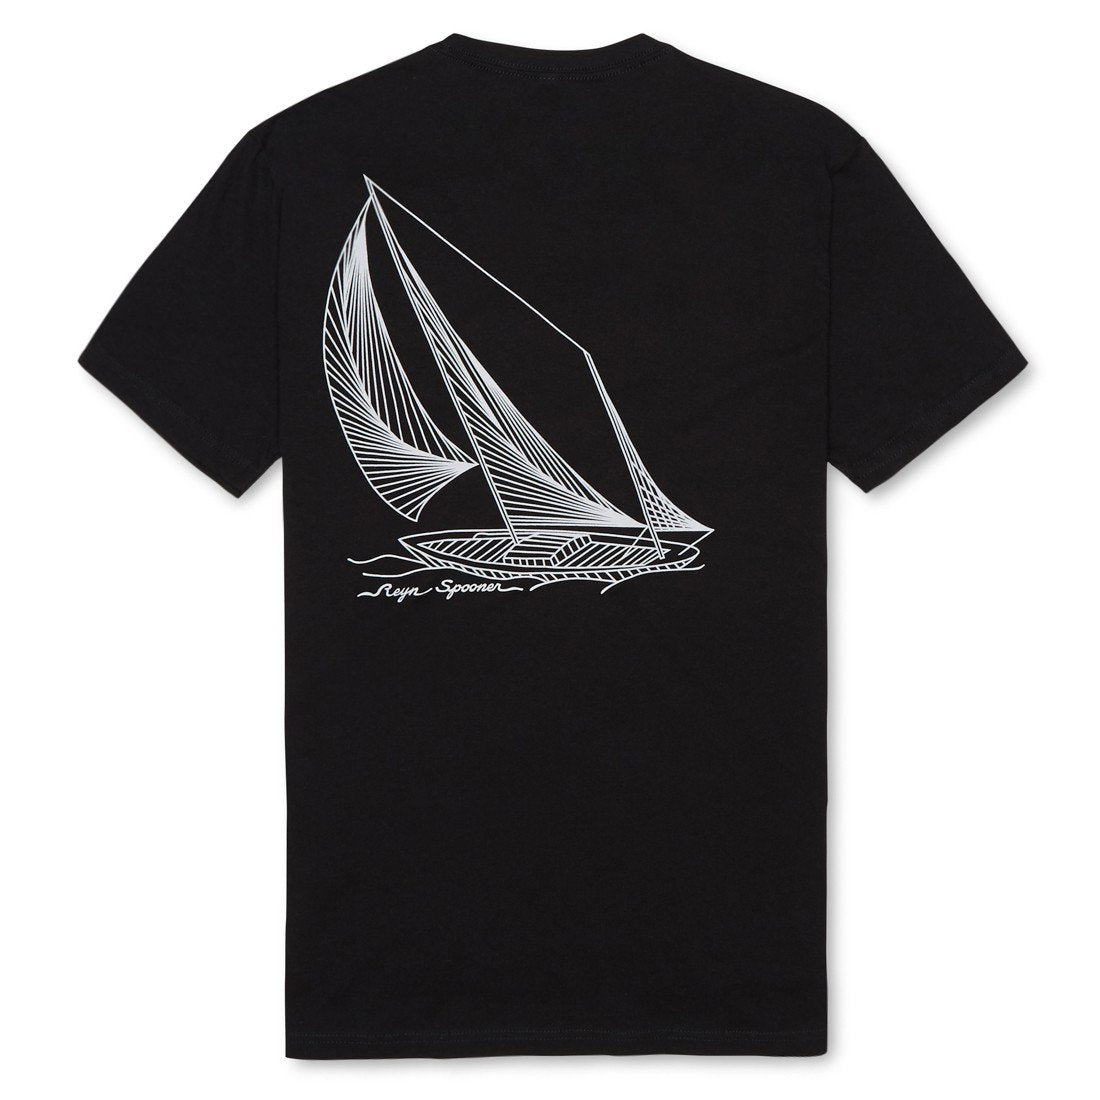 STRING AND SAILS TEE - Zoomed